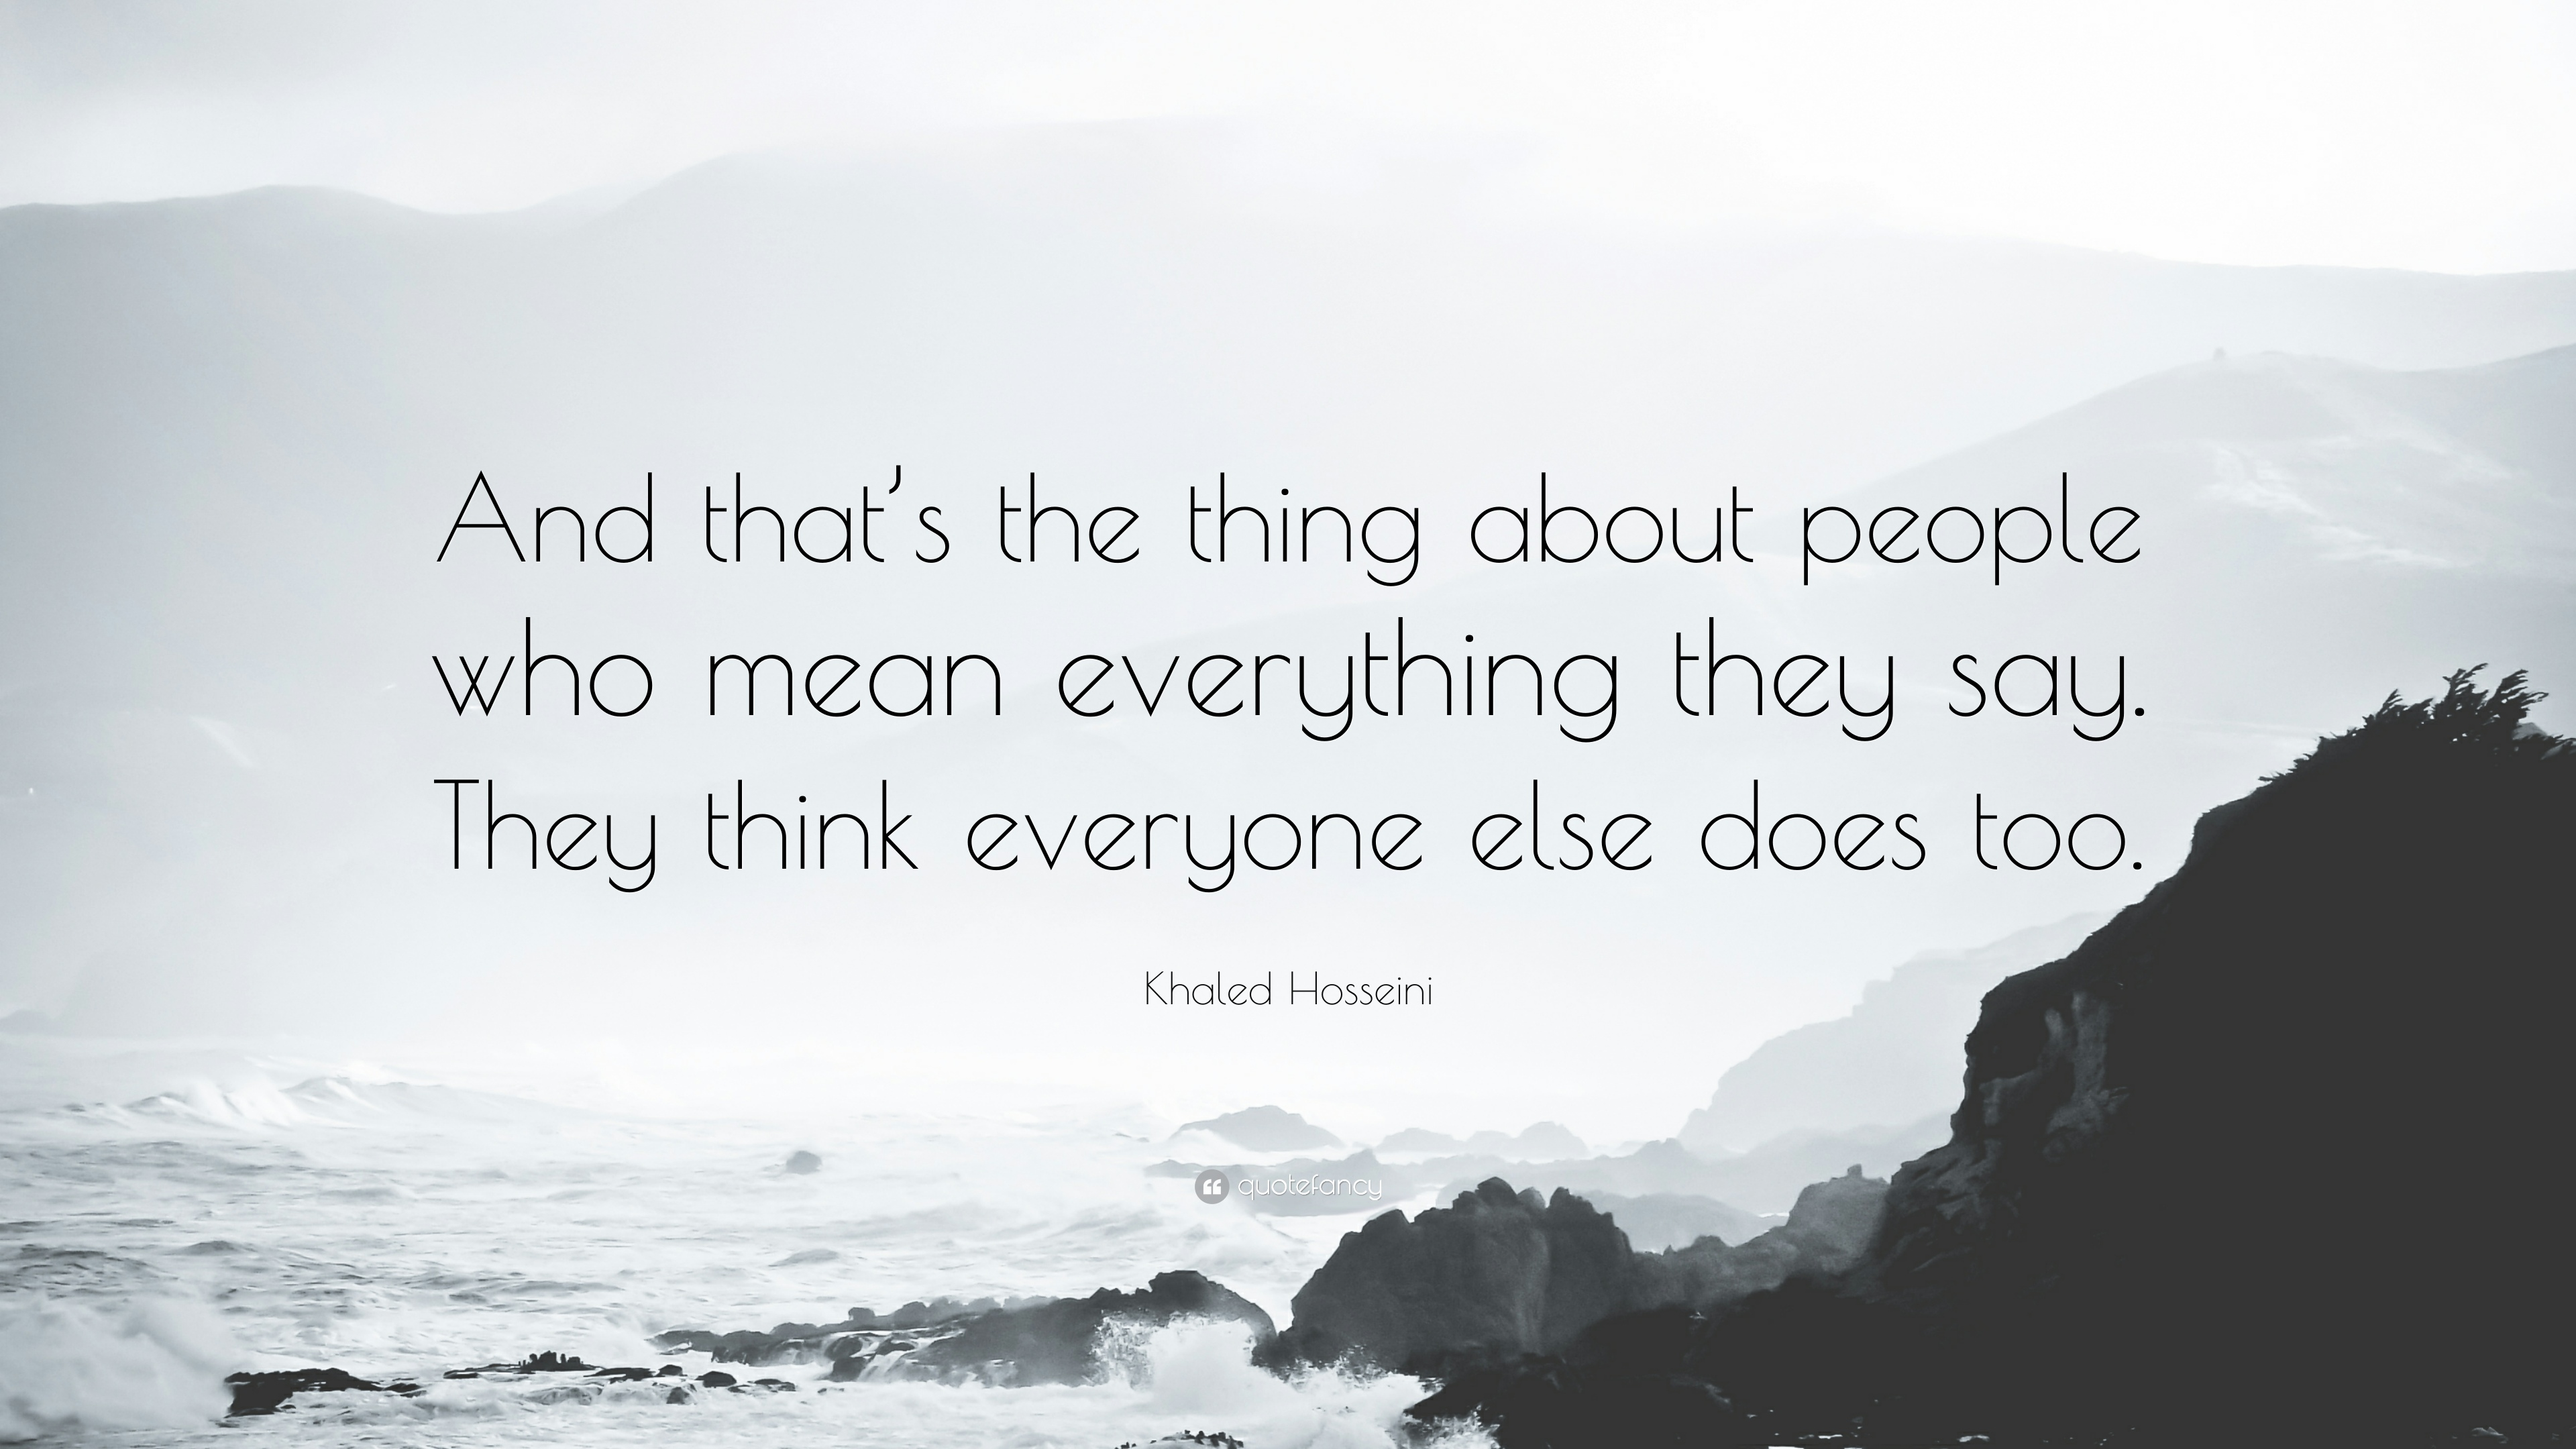 Image result for And that's the thing about people who mean everything they say.they think everyone else does too.